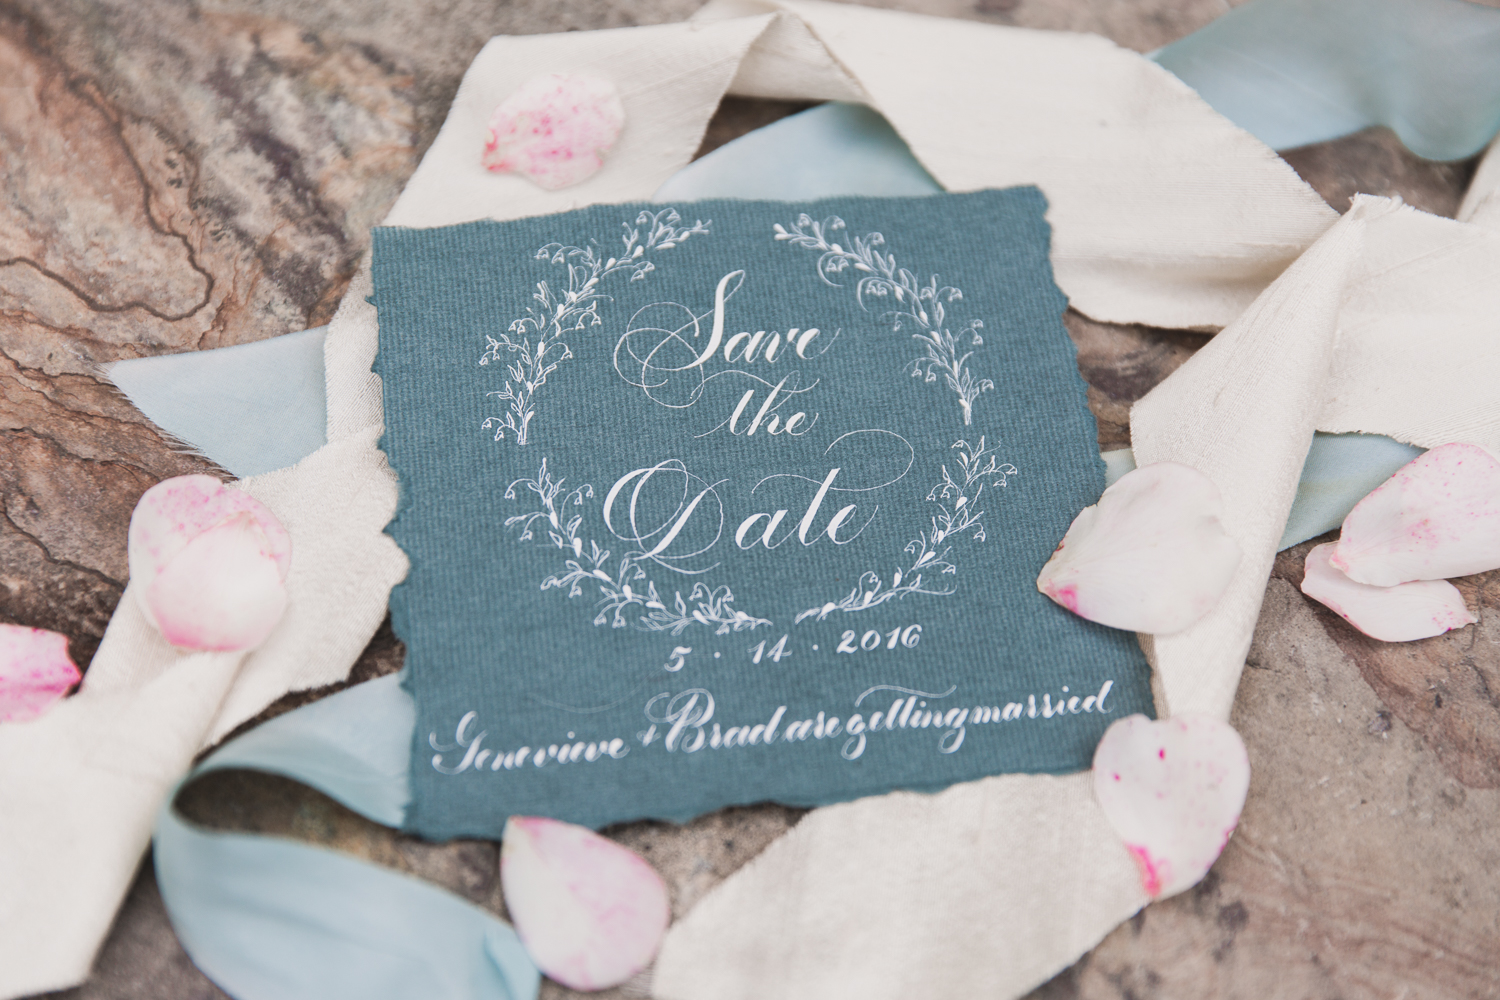 CustomCalligraphyWeddingSaveTheDateVintageWreath